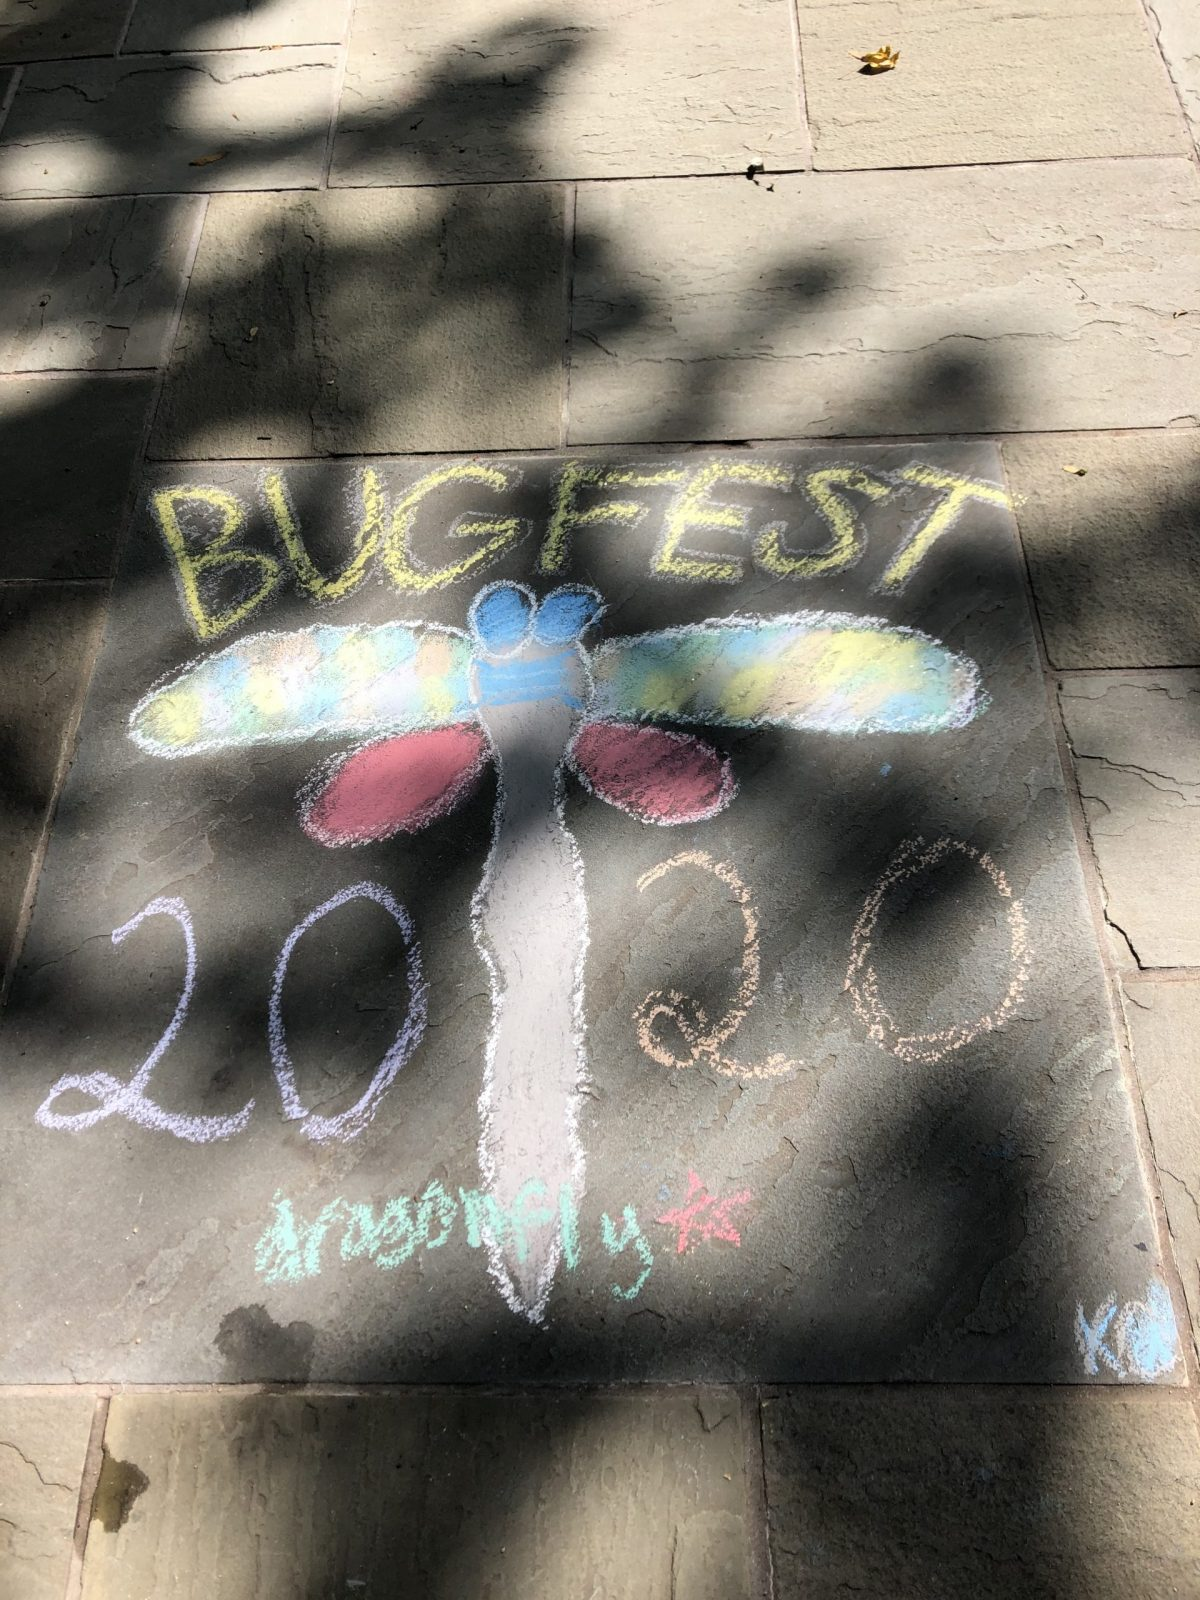 bugfest 2020 and a dragonfly